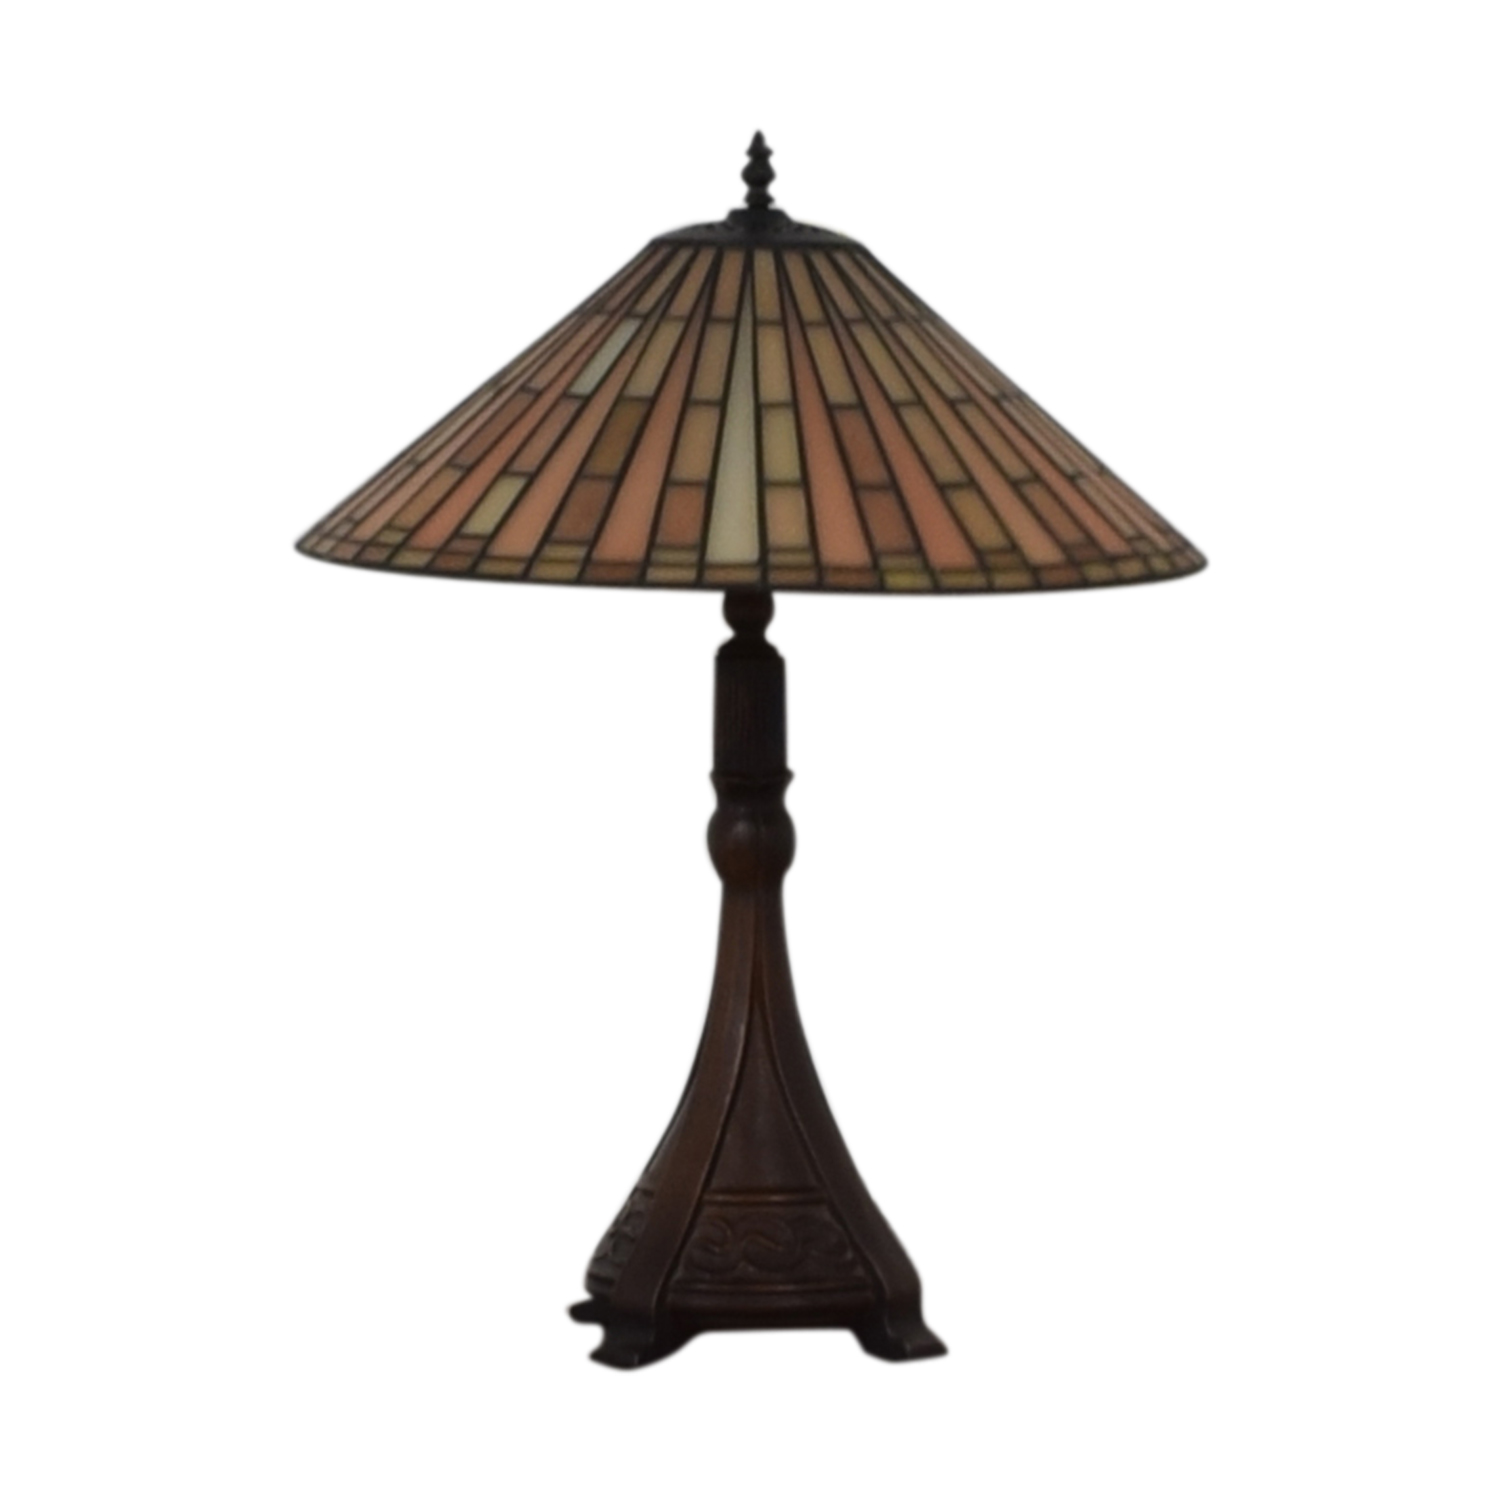 Tiffany Style Table Lamp Decor